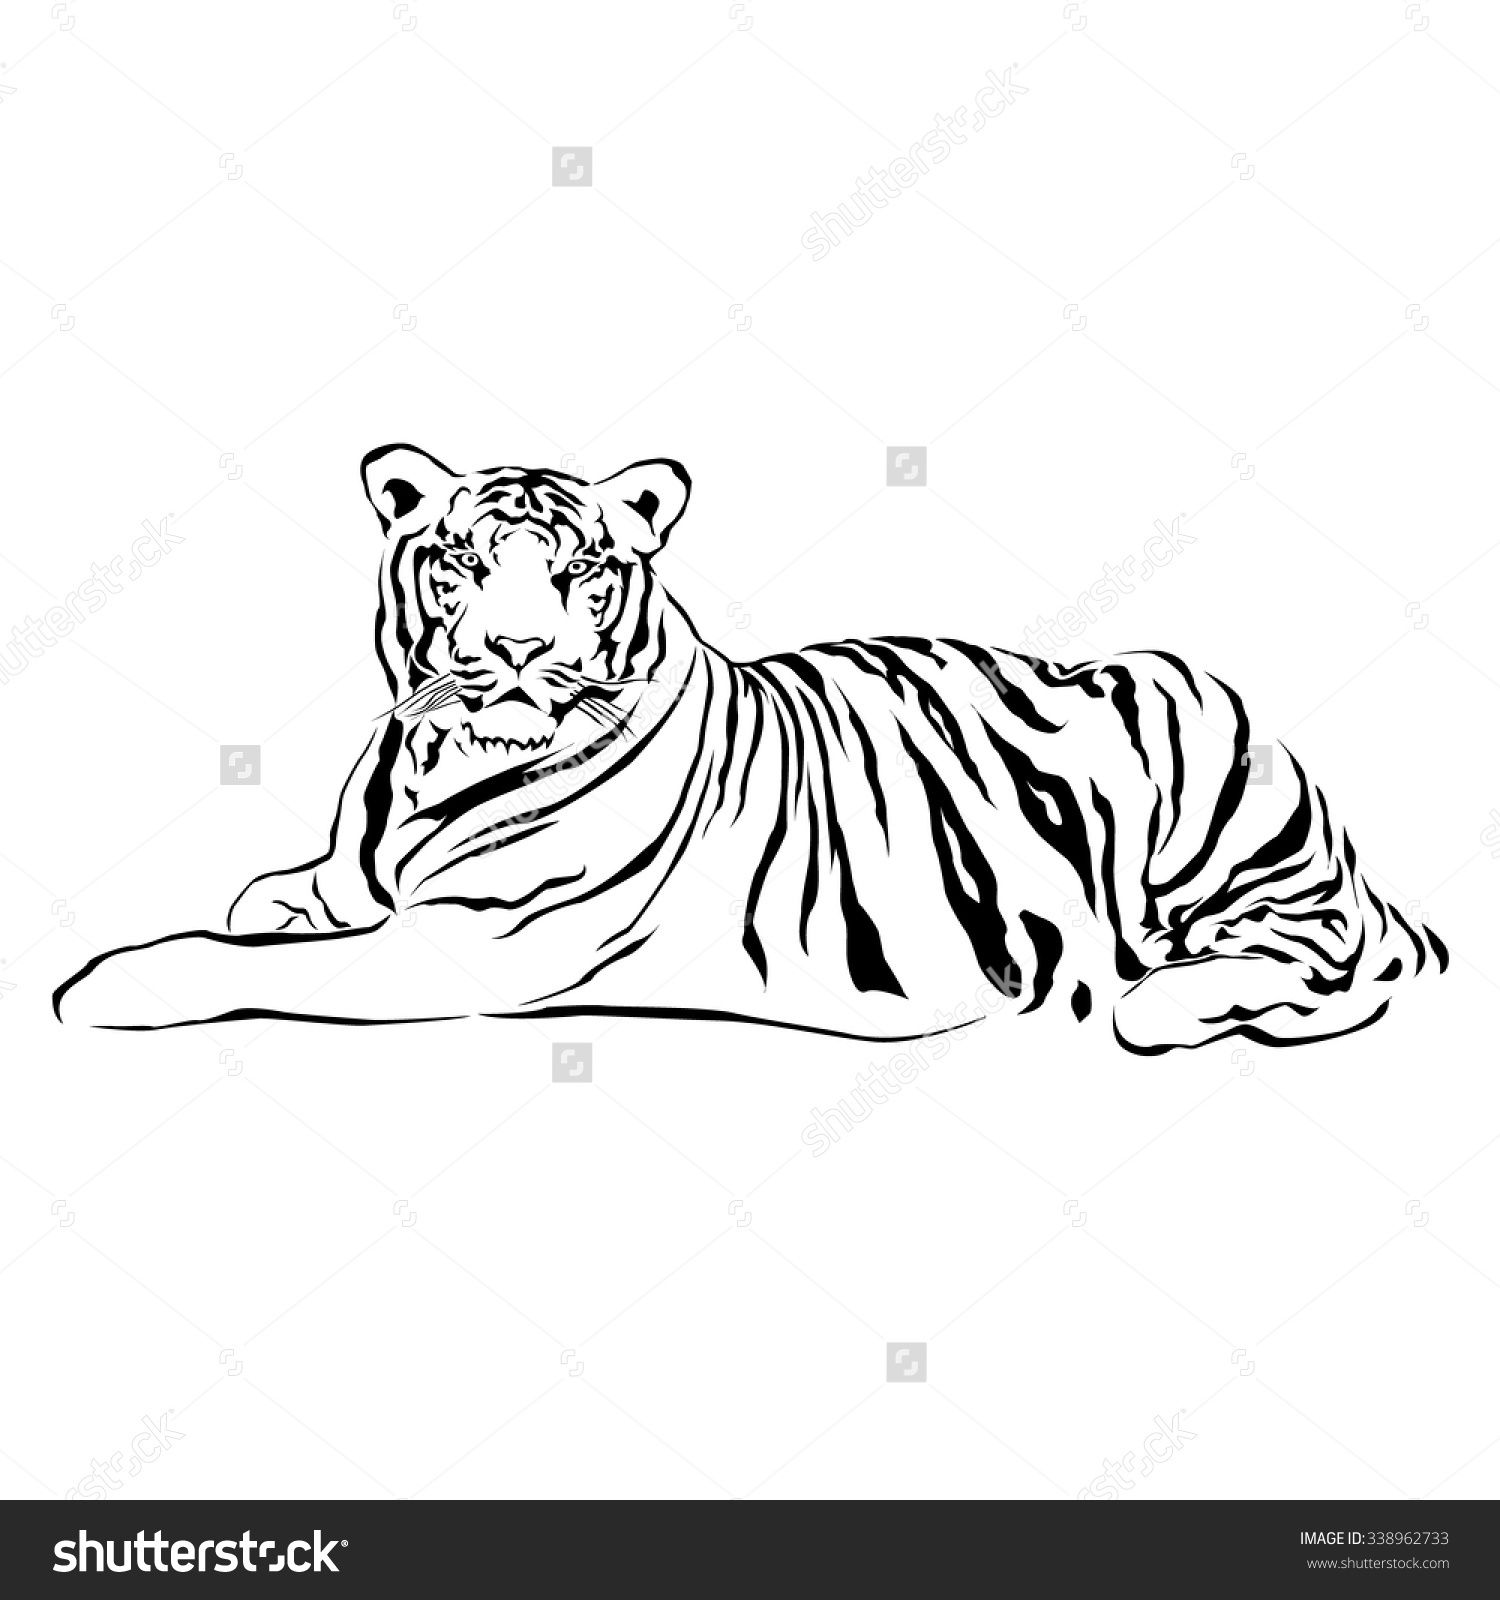 Tiger Sitting Black And White Vector